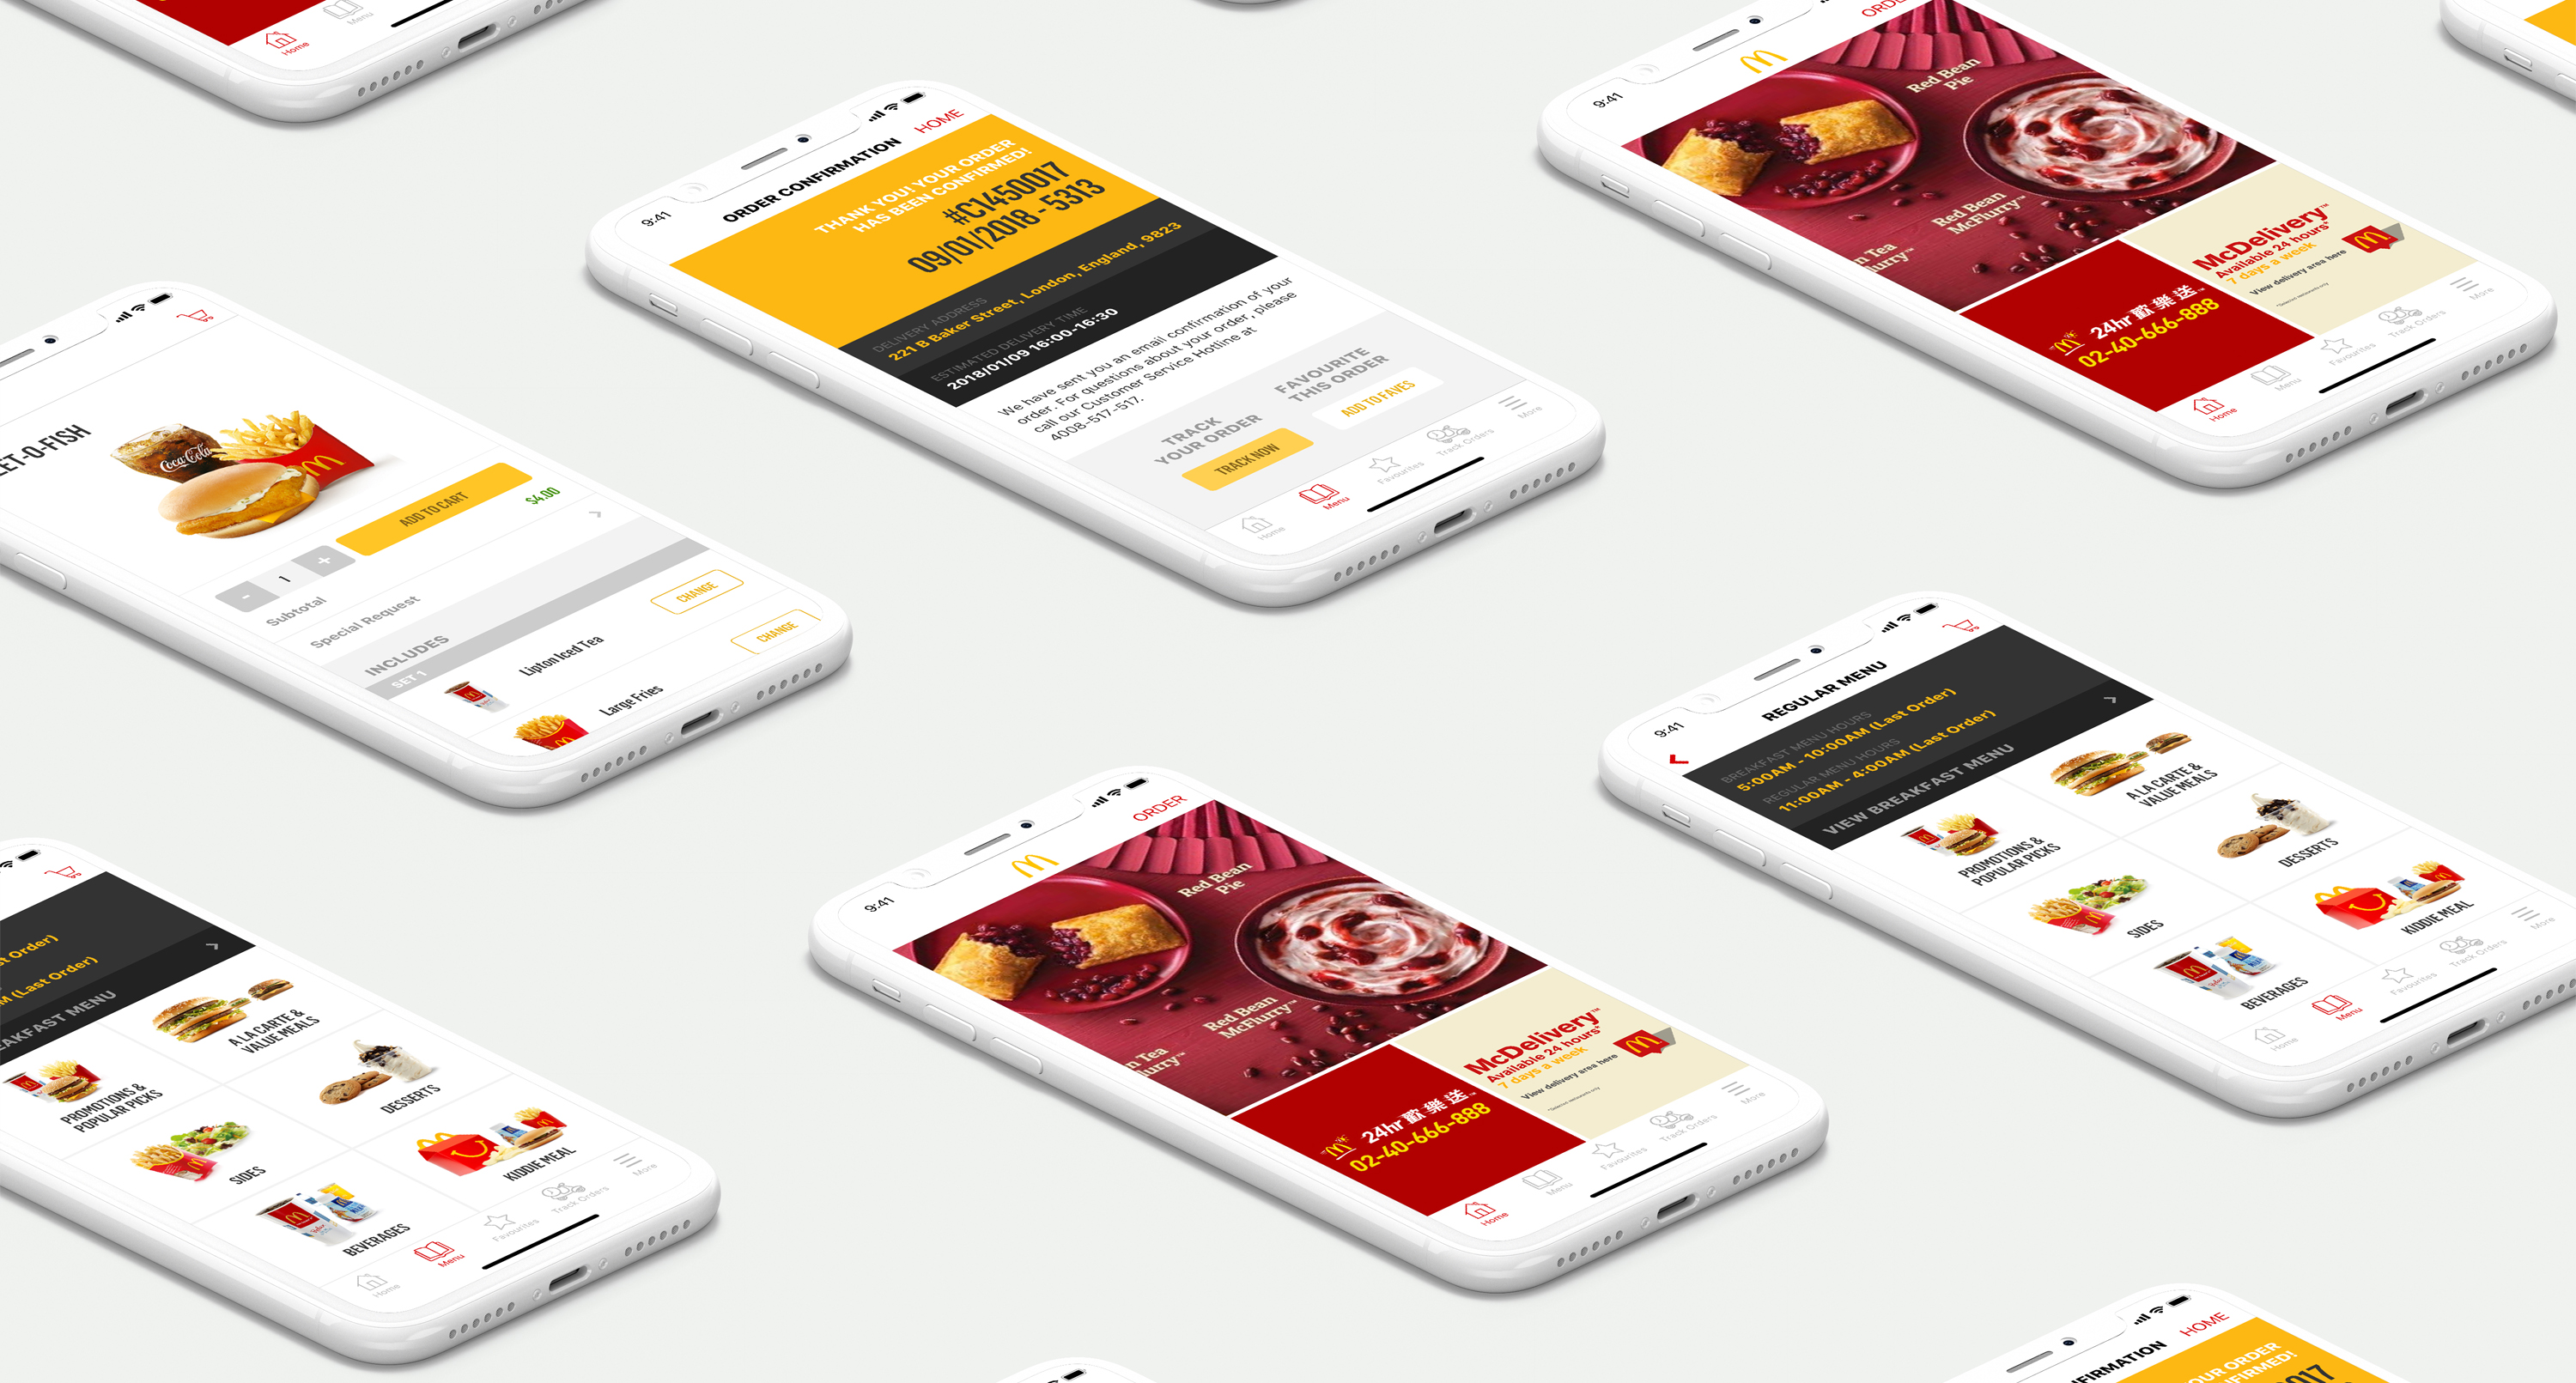 Screenshots of the different screens on the McDonald's Application